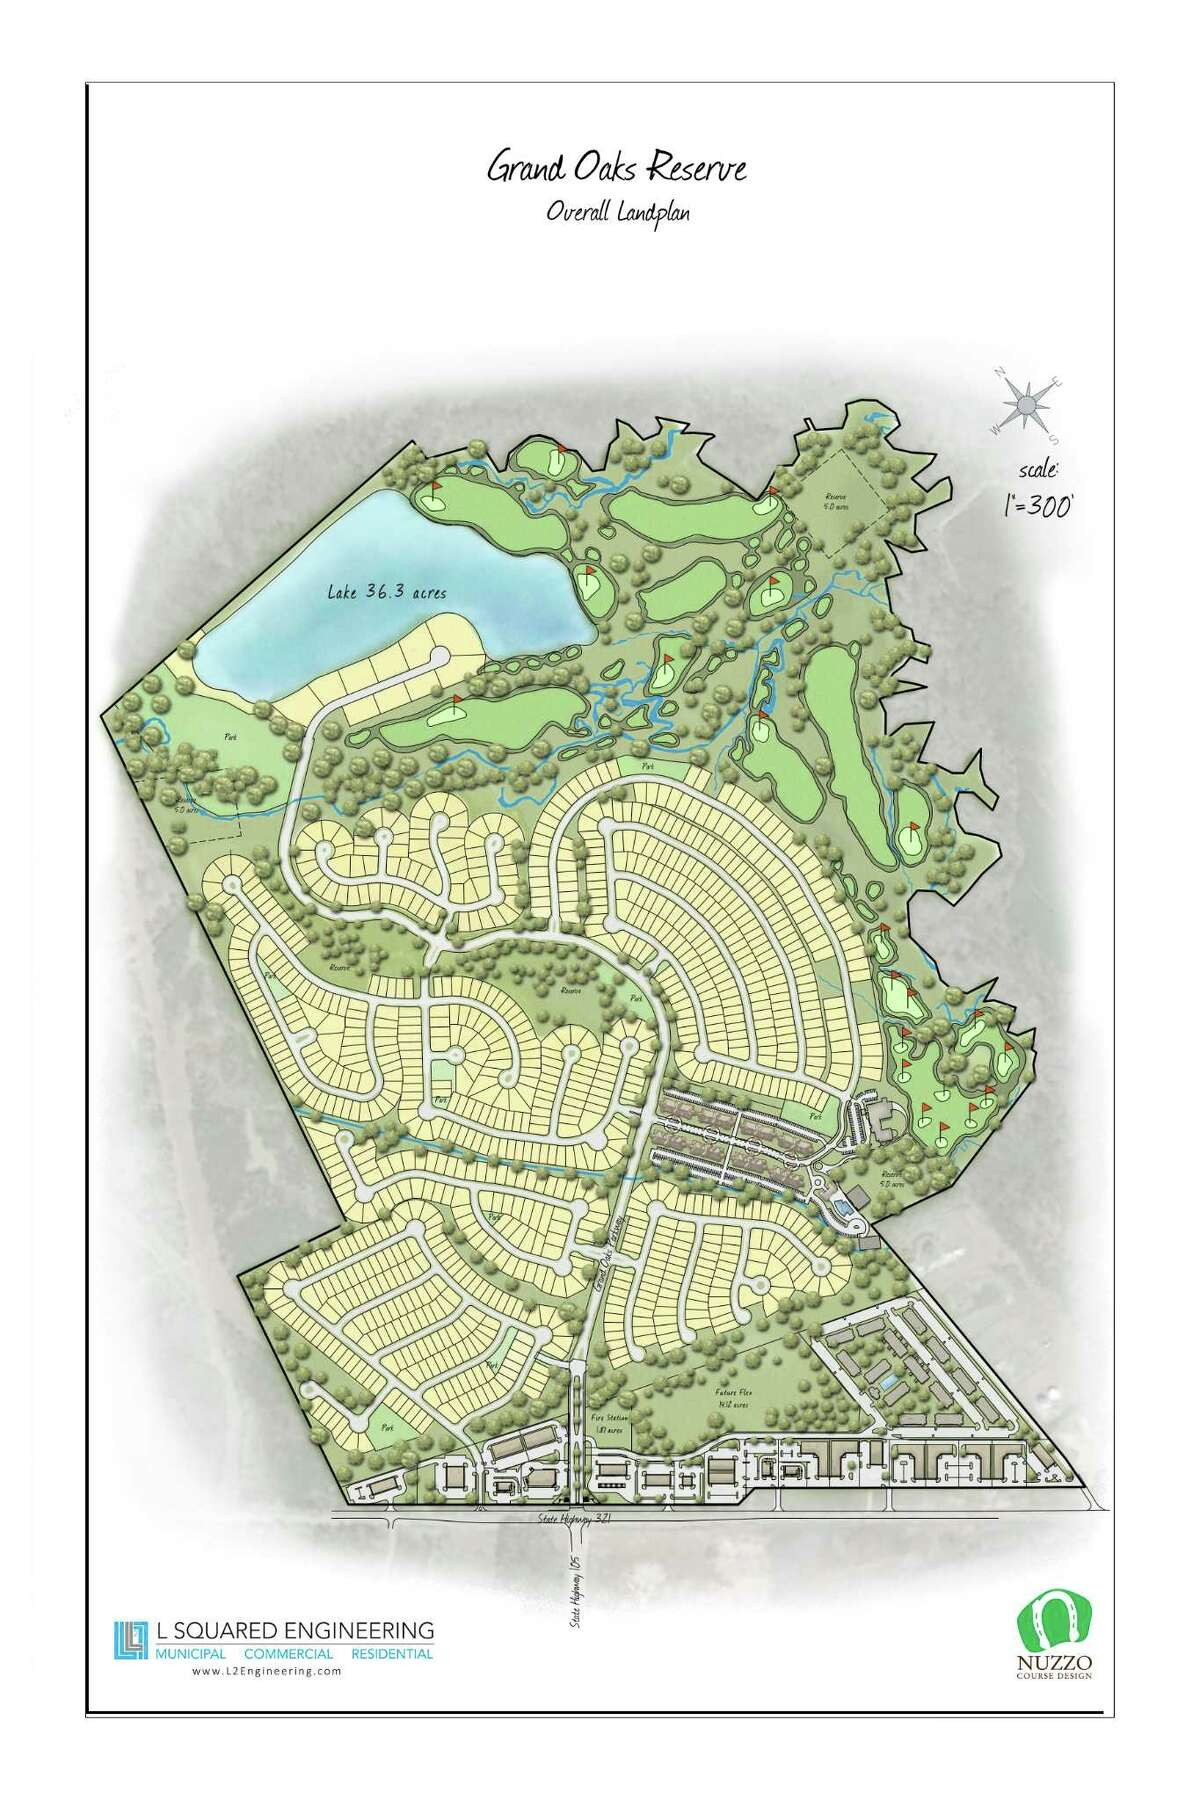 The artist's rendering of the layout of the new subdivision.